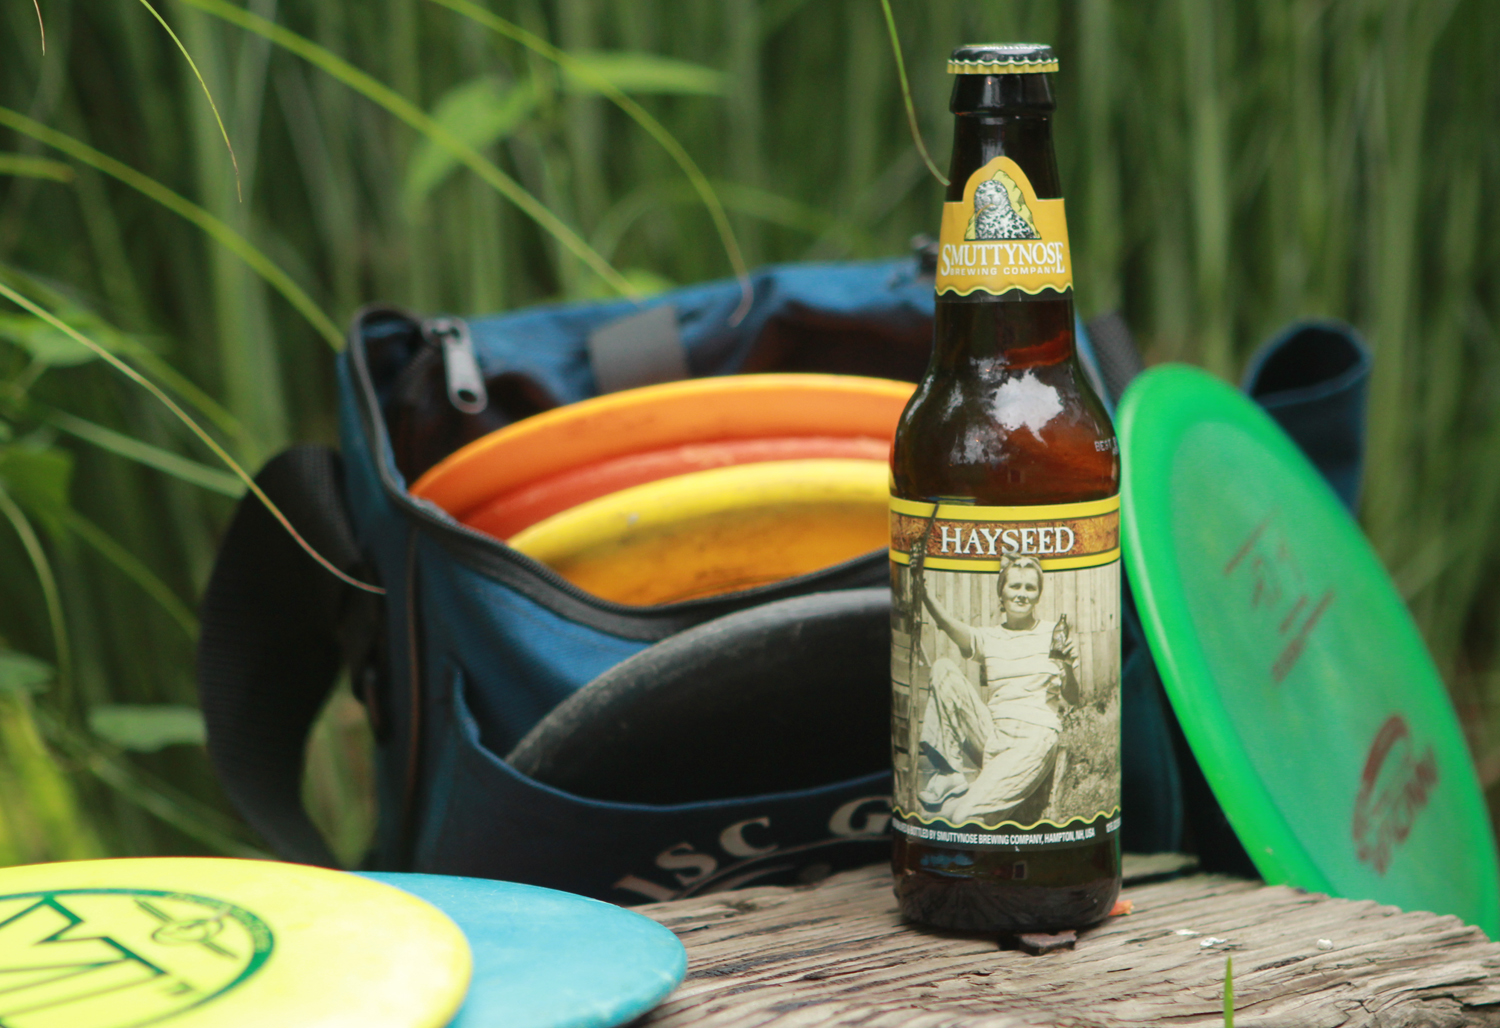 Hayseed summer seasonal beer is a Farmhouse Ale.